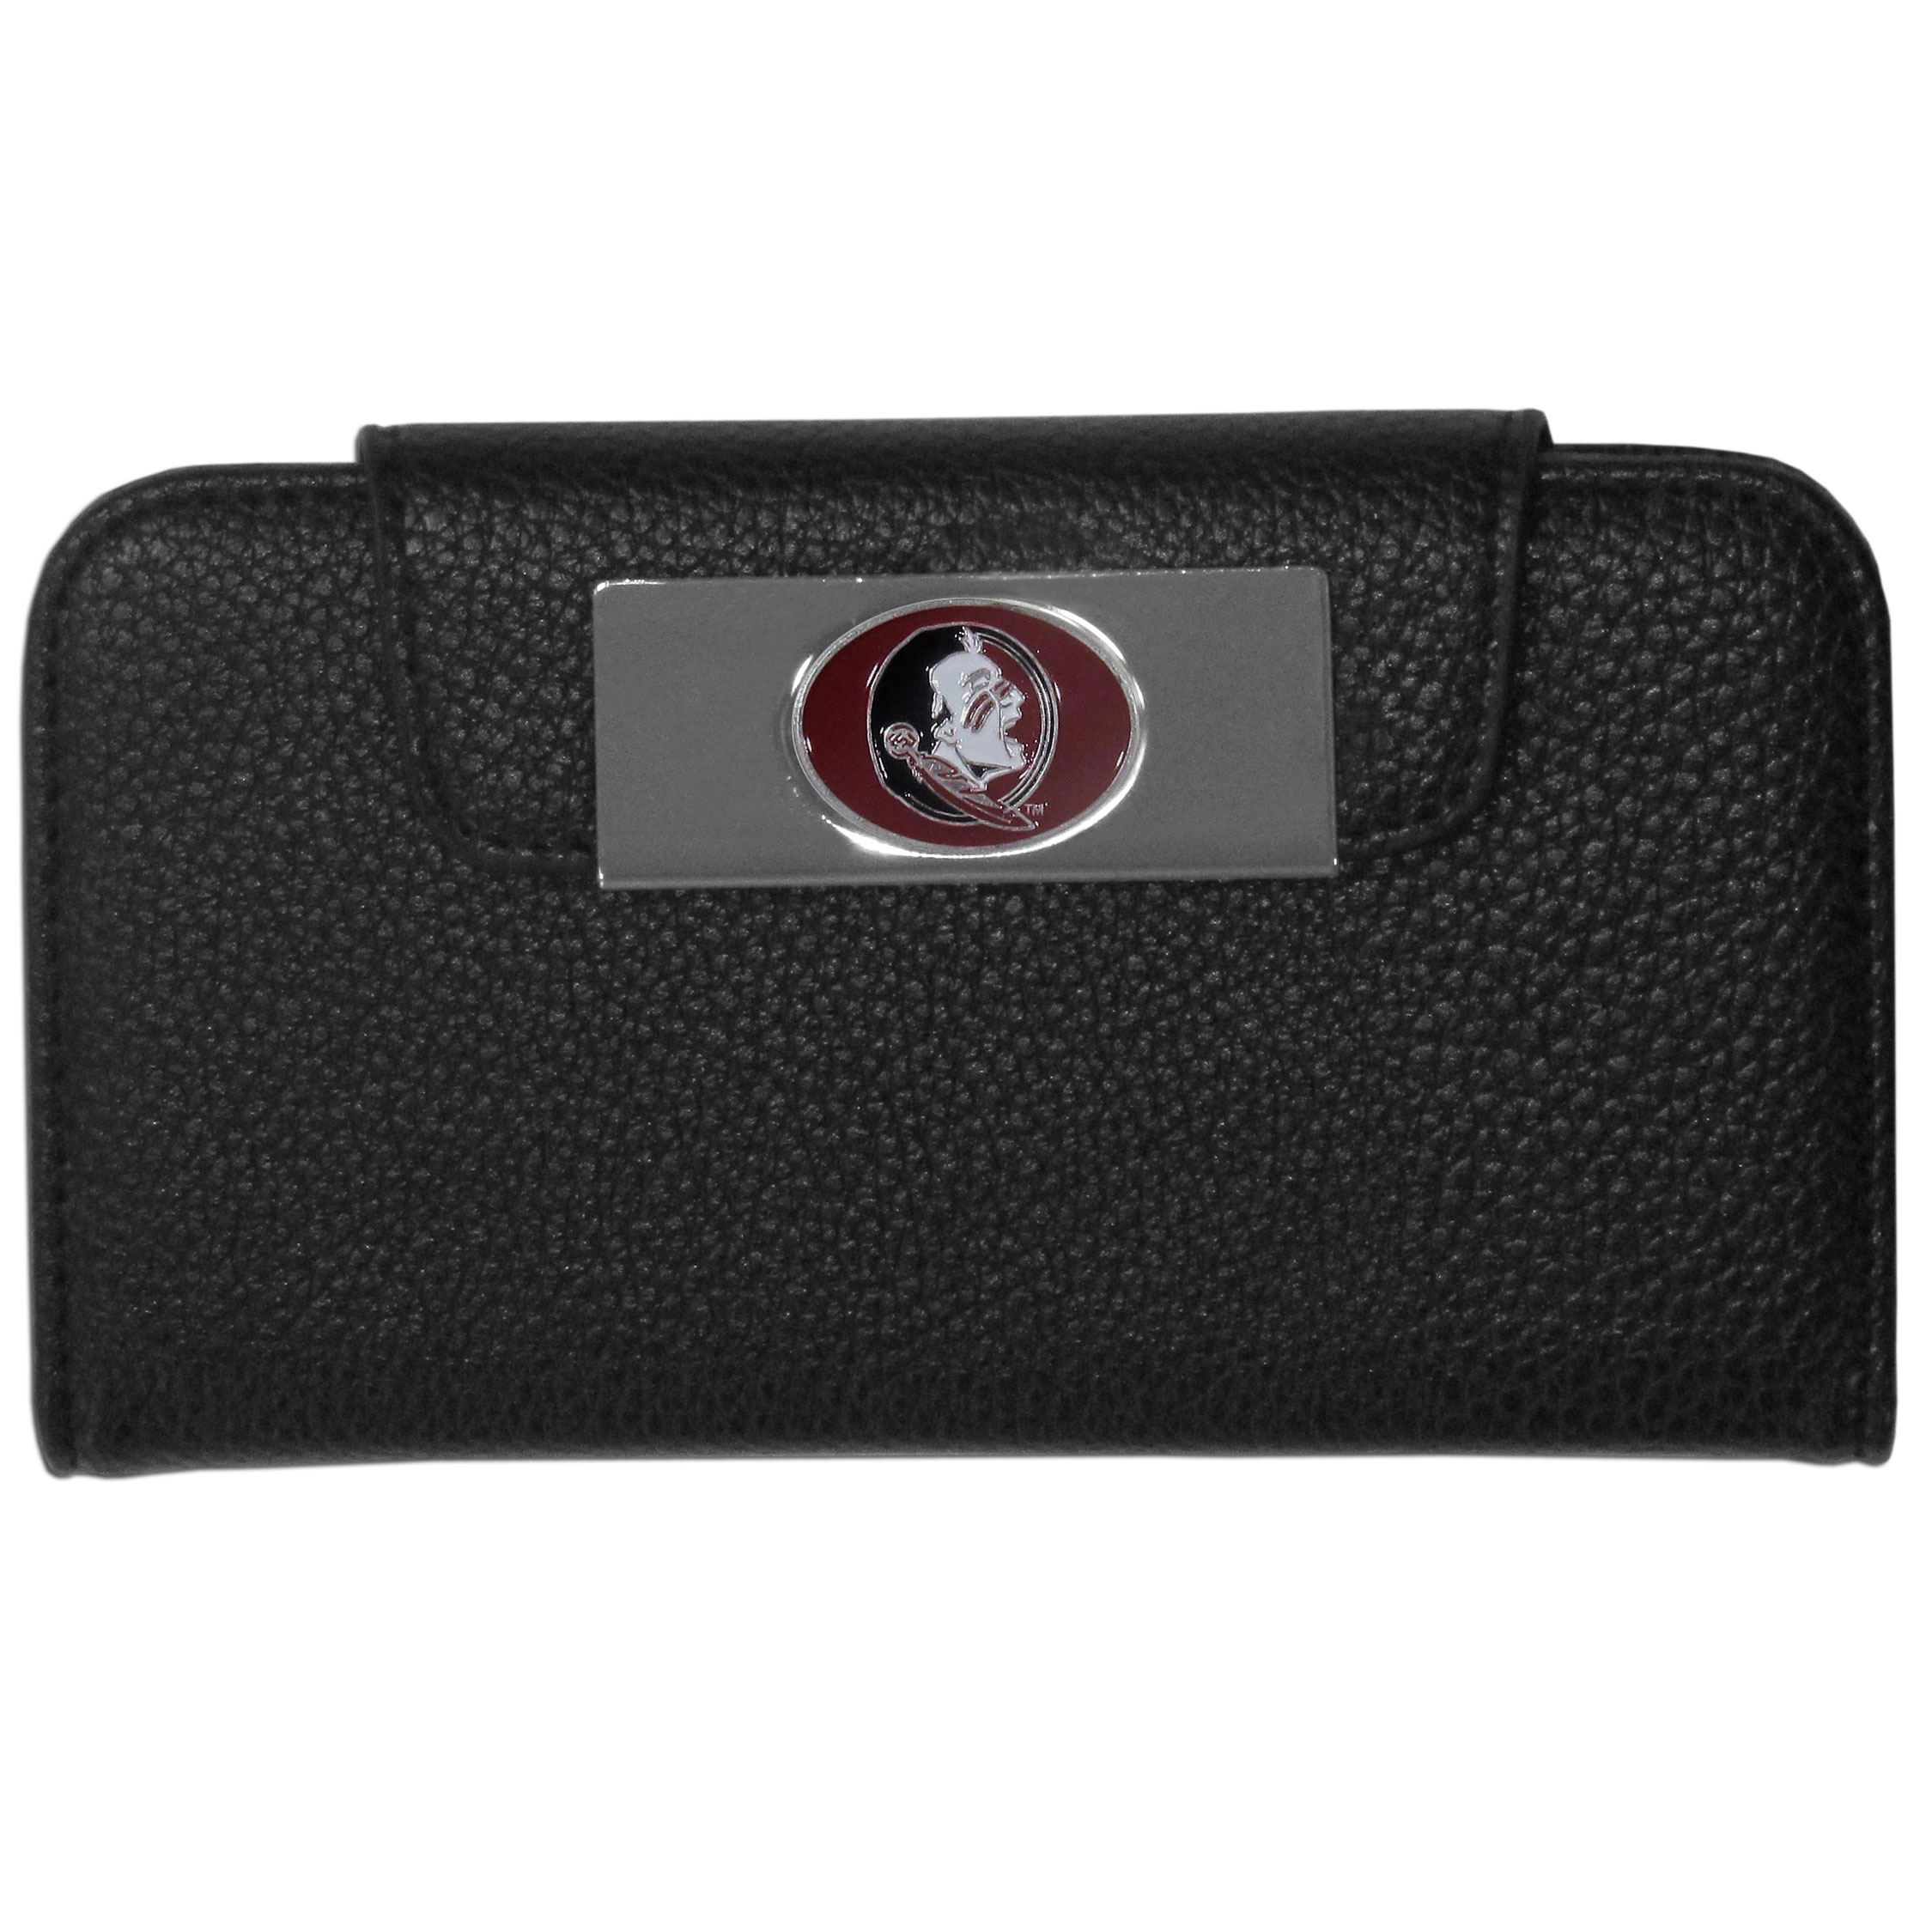 Florida St. Seminoles Samsung Galaxy S4 Wallet Case - This new & wildly popular case is ideal for those who like to travel light! The stylish case has an inner hard shell that securely holds your phone while allowing complete access to the phone's functionality. The flip cover has slots for credit cards, business cards and identification. The magnetic flip cover has a metal Florida St. Seminoles emblem on a high polish chrome backing. Fits the Samsung Galaxy S4